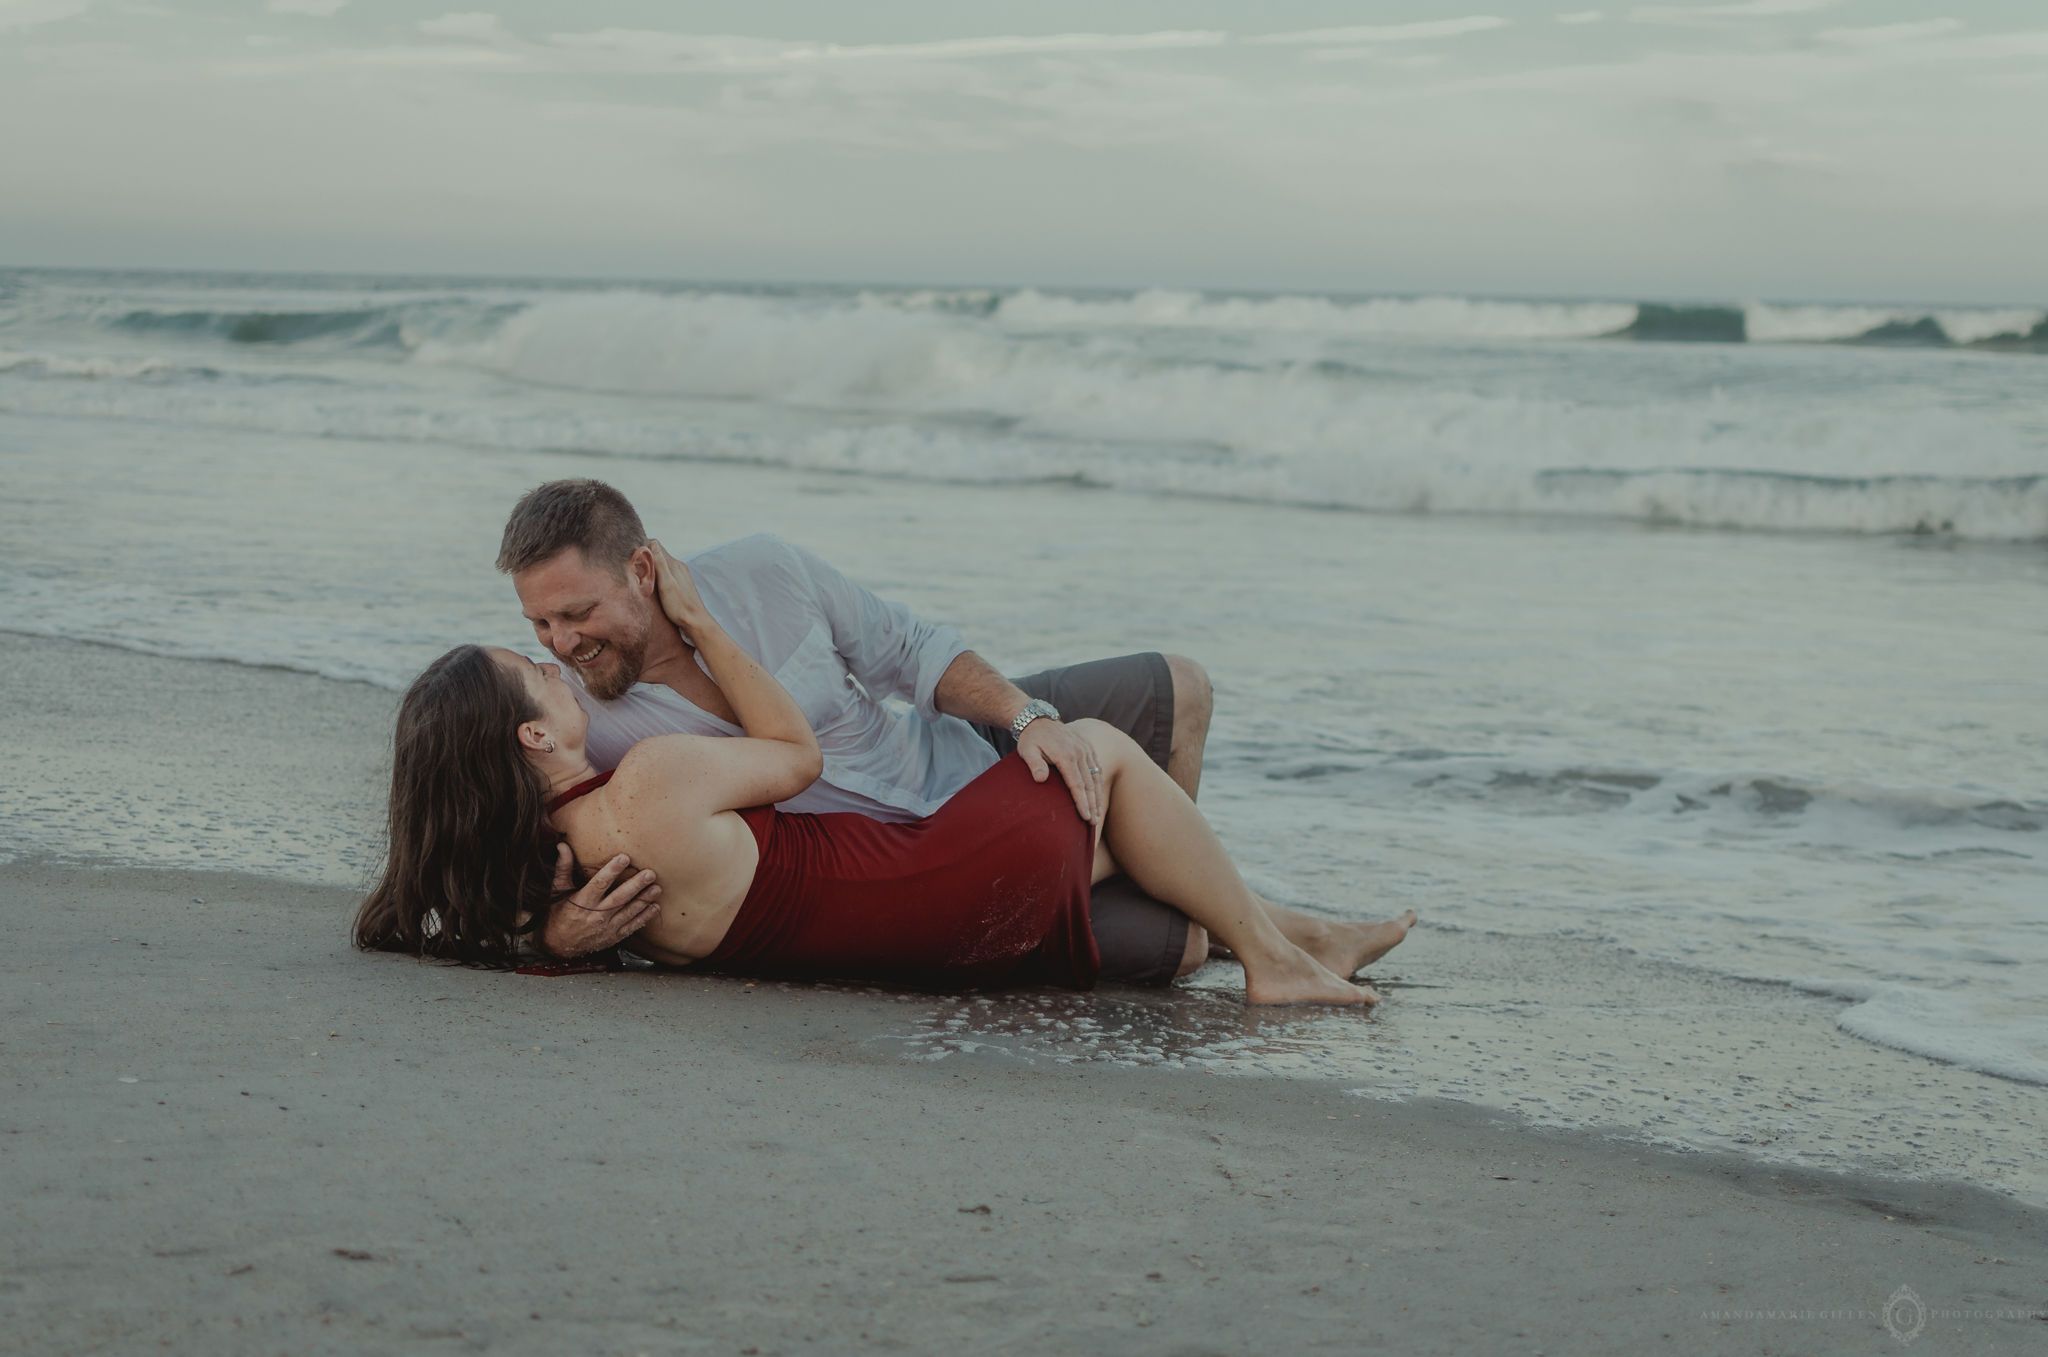 sexy wet couples photos in the water at wilmington, nc beach